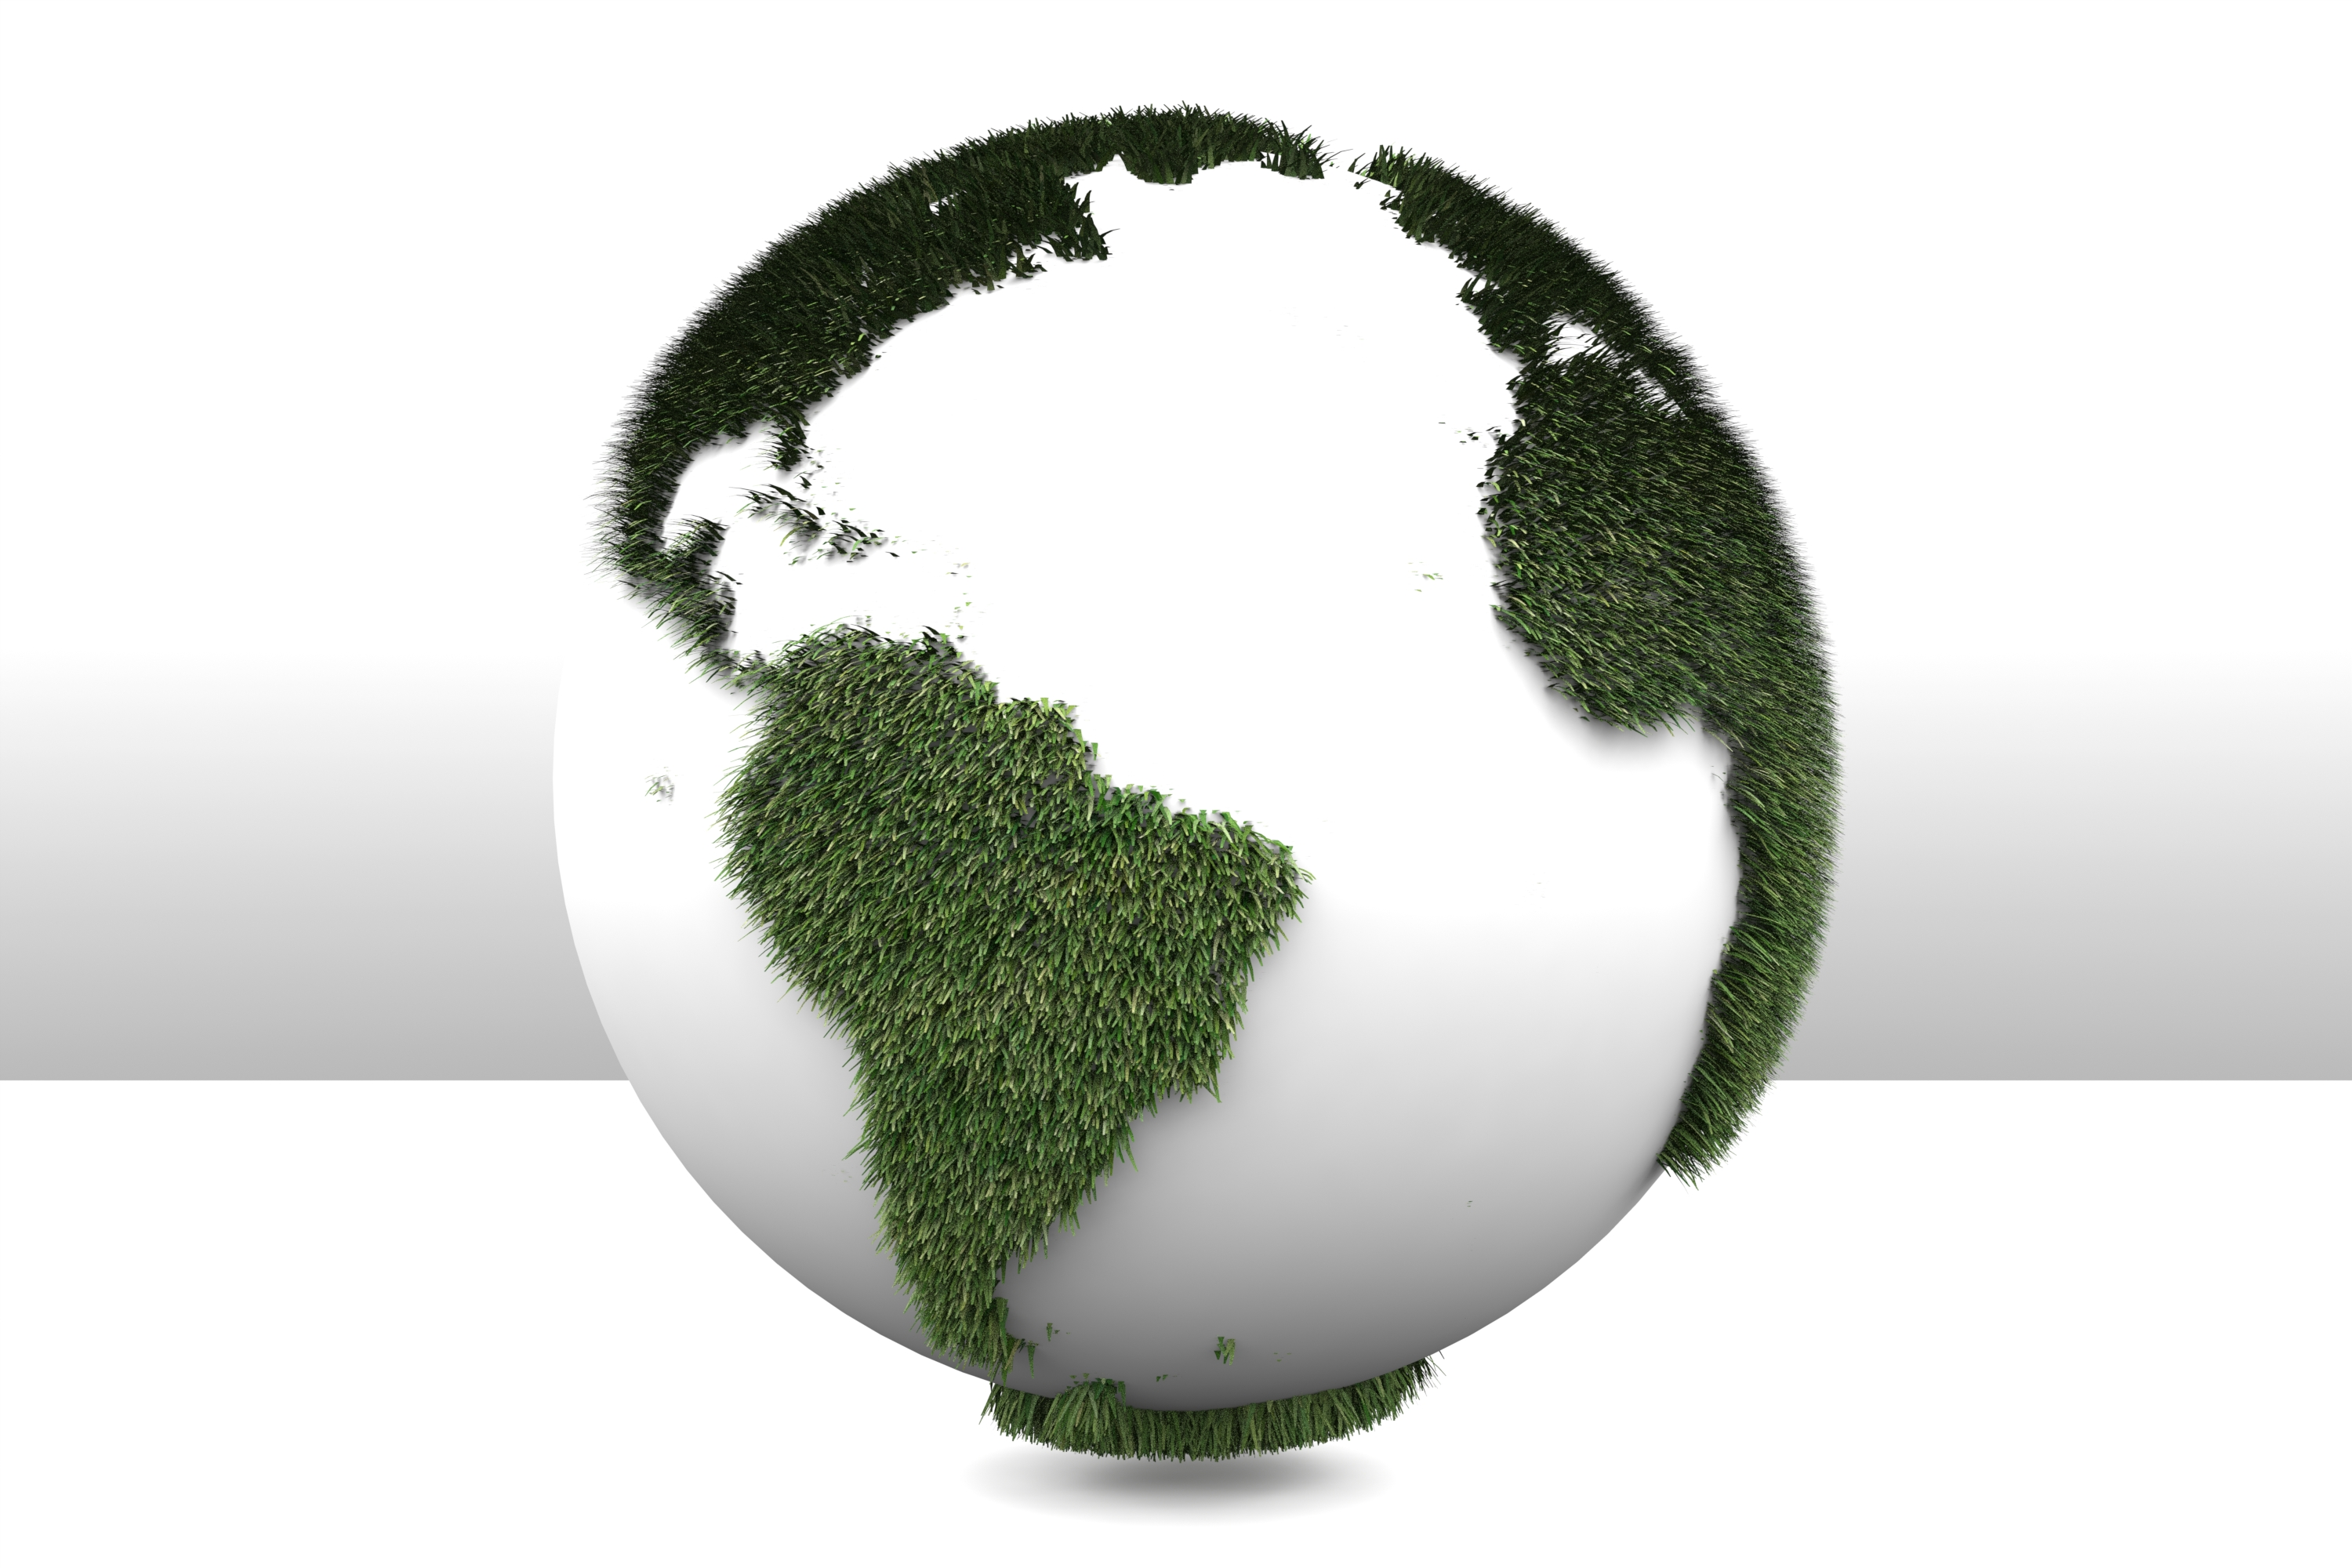 3D Green Planet Earth, © Chris Potter, www.StockMonkeys.com, CC BY 2.0, https://creativecommons.org/licenses/by/2.0/